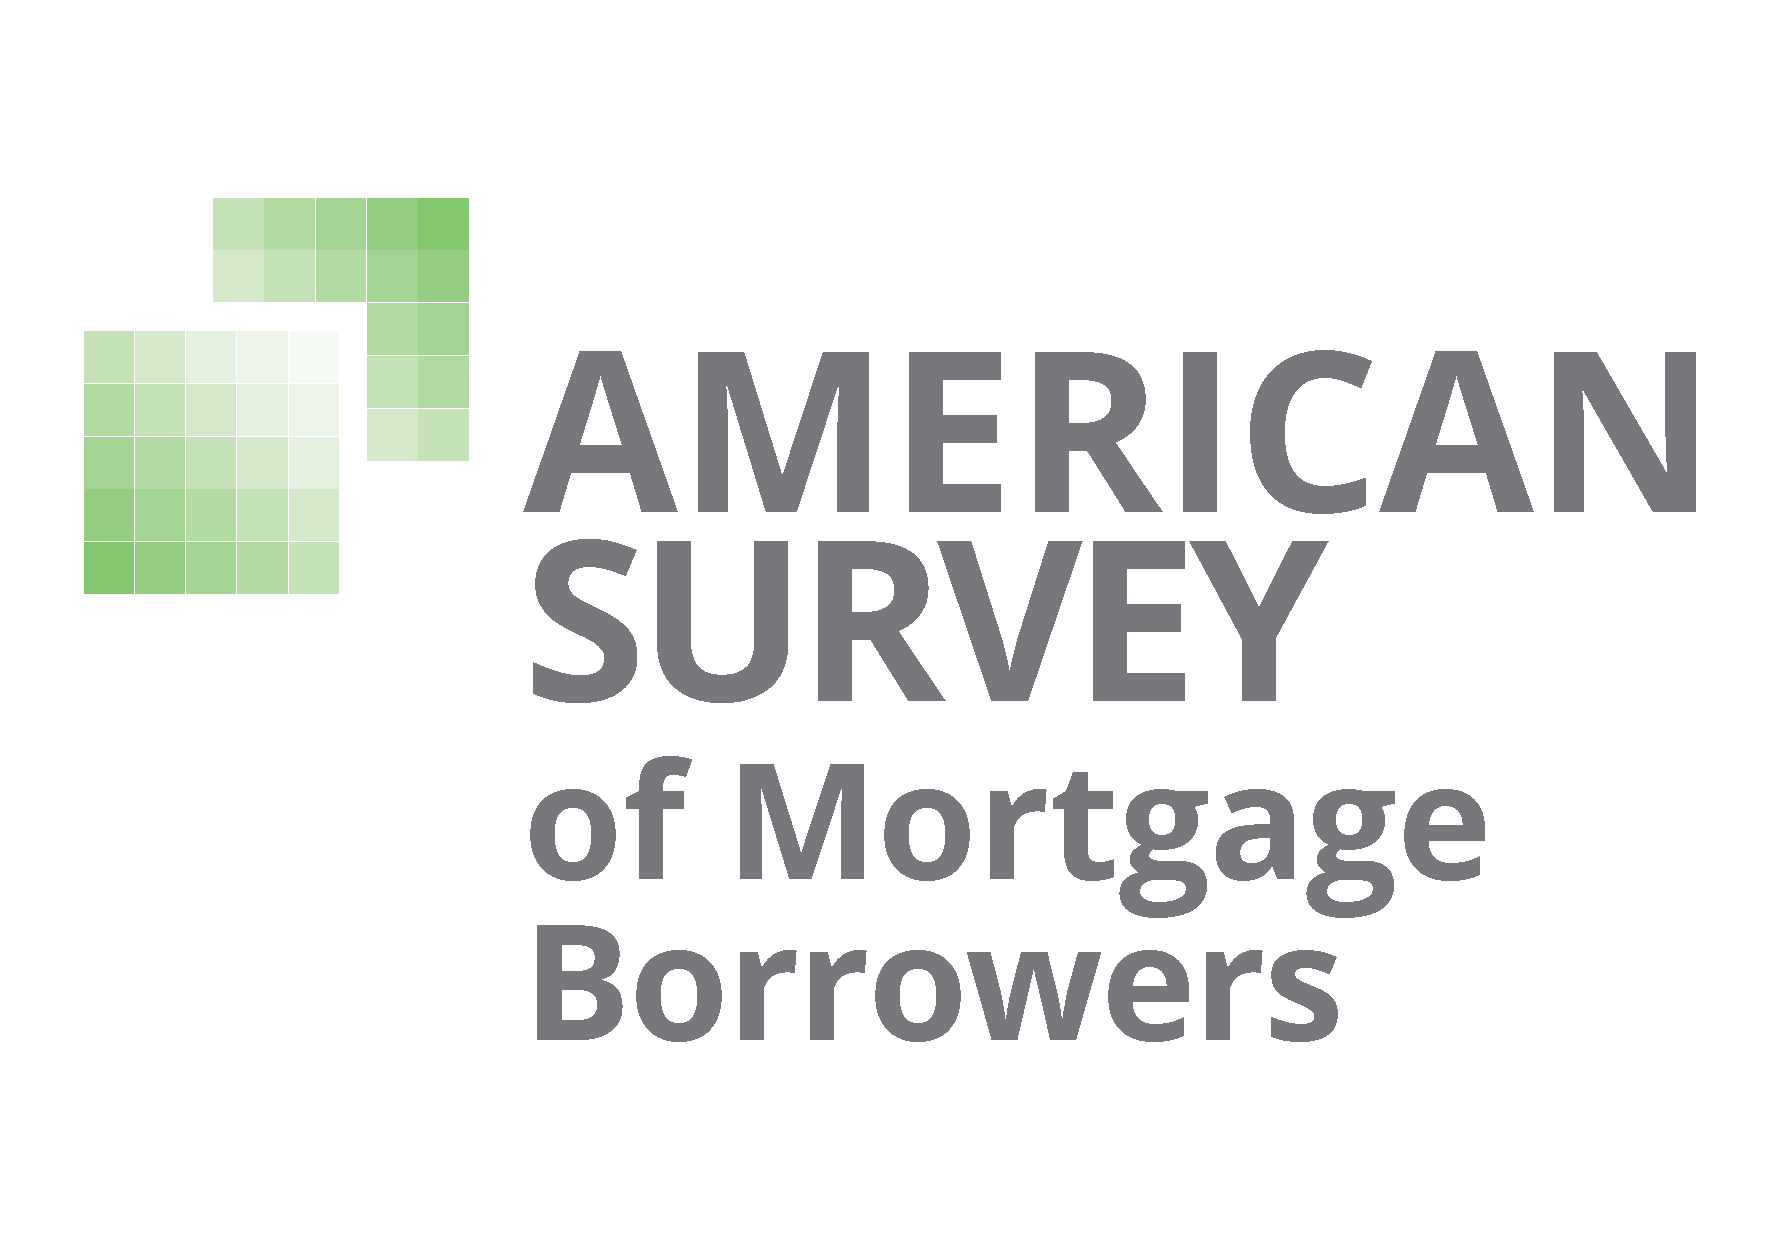 American Survey of Mortgage Borrowers Logo